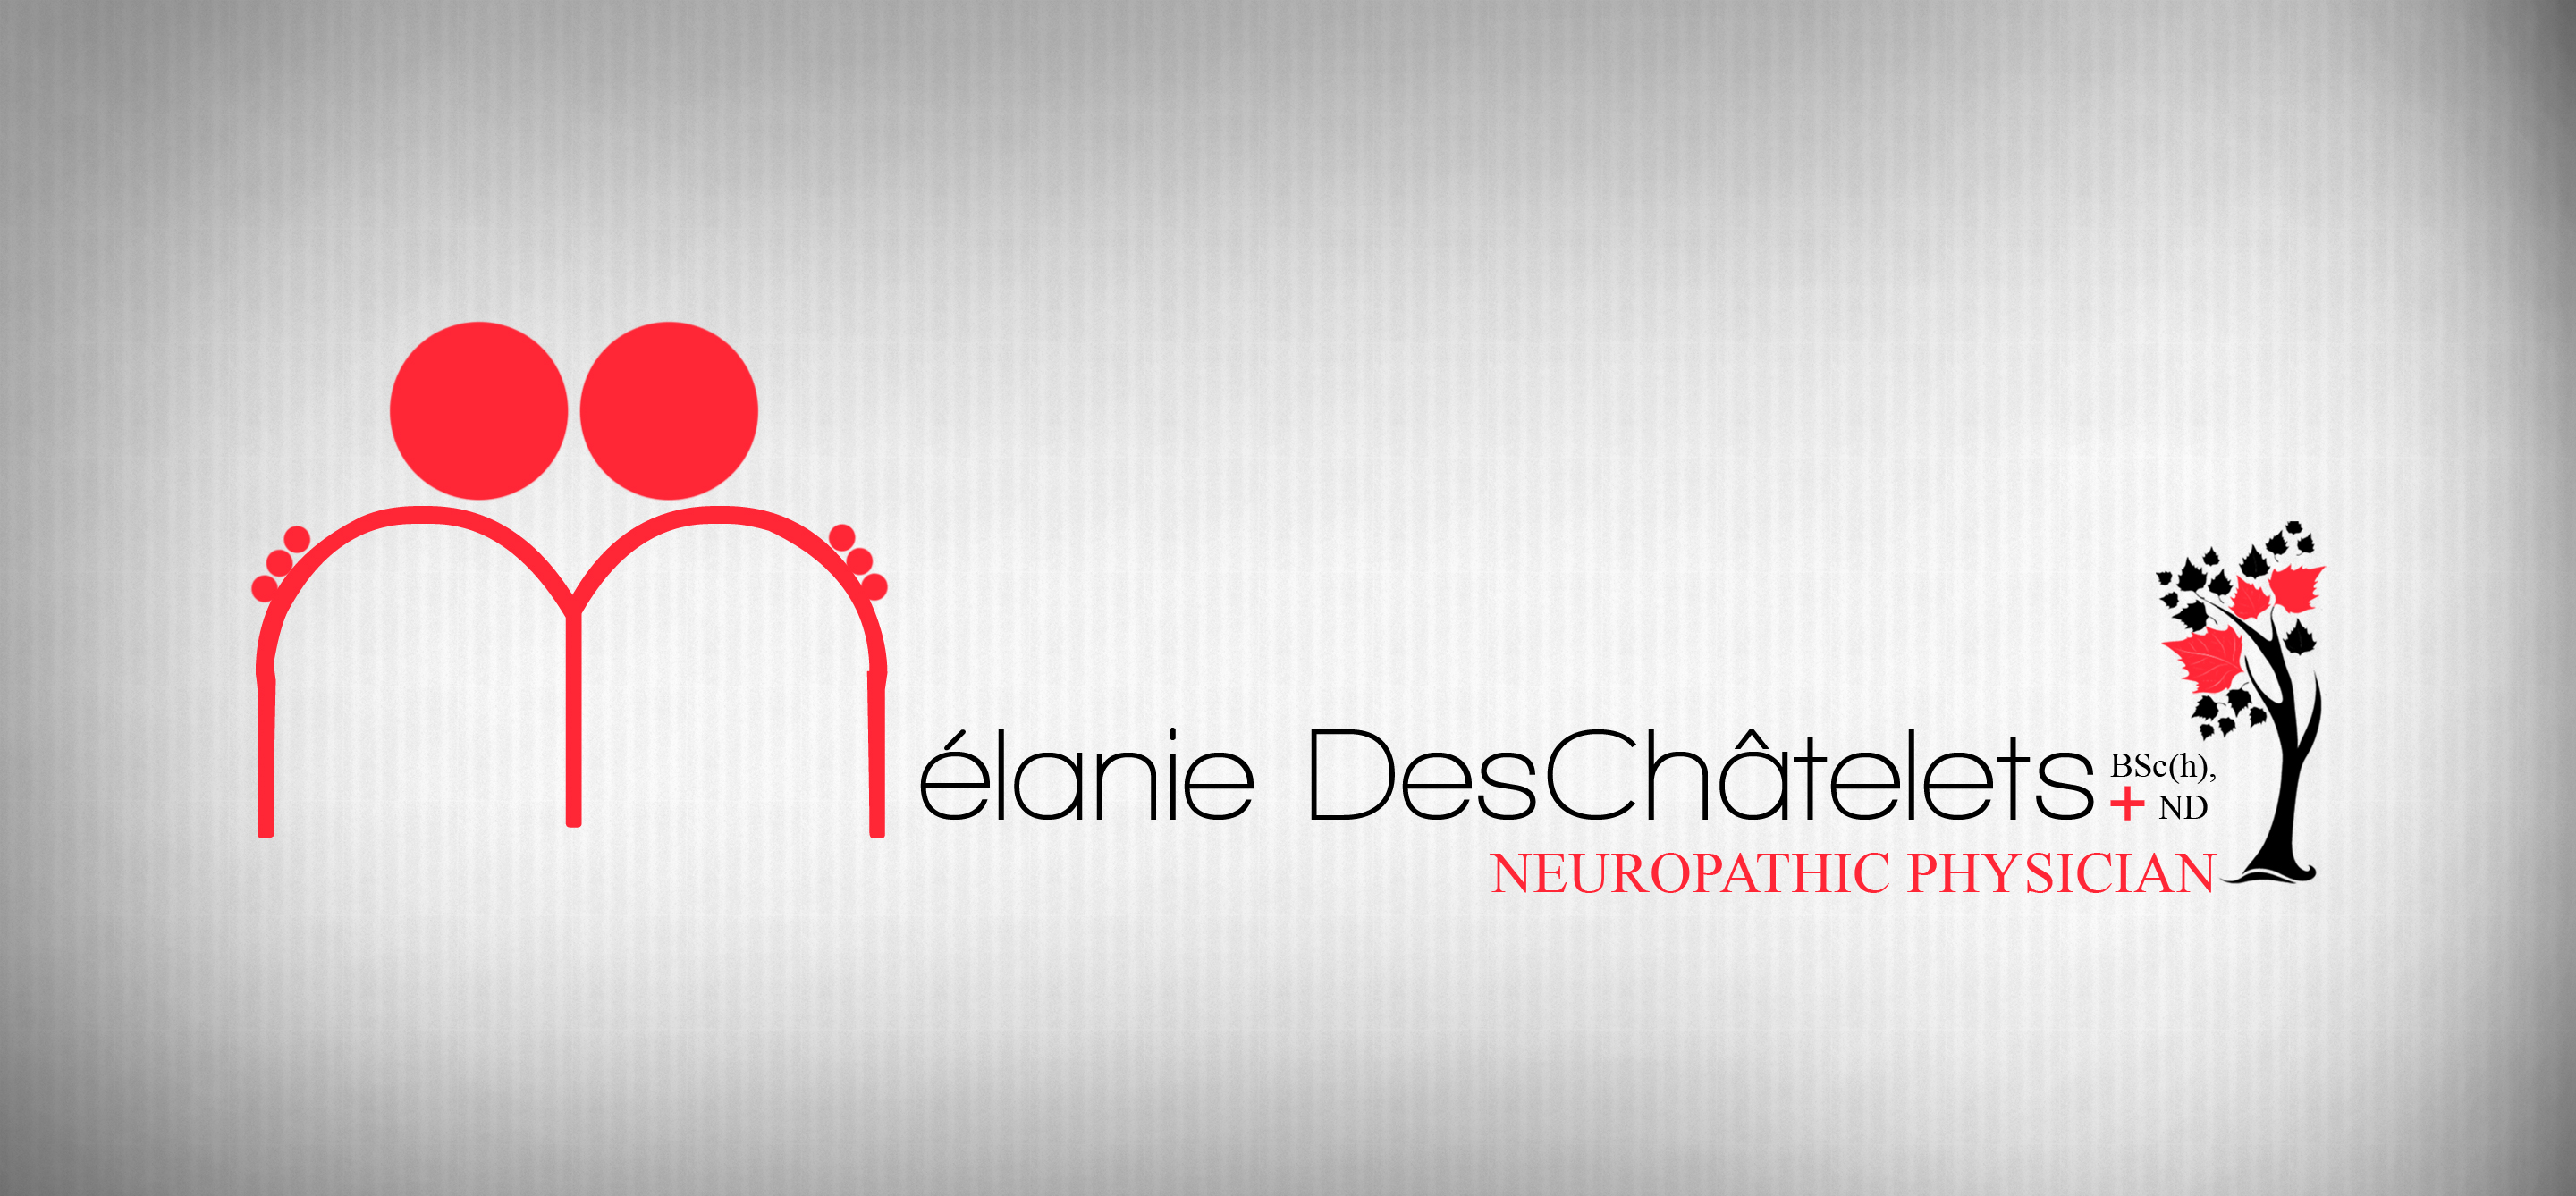 Logo Design by Sandip Kumar - Entry No. 221 in the Logo Design Contest Artistic Logo Design for Dr Mélanie DesChâtelets.